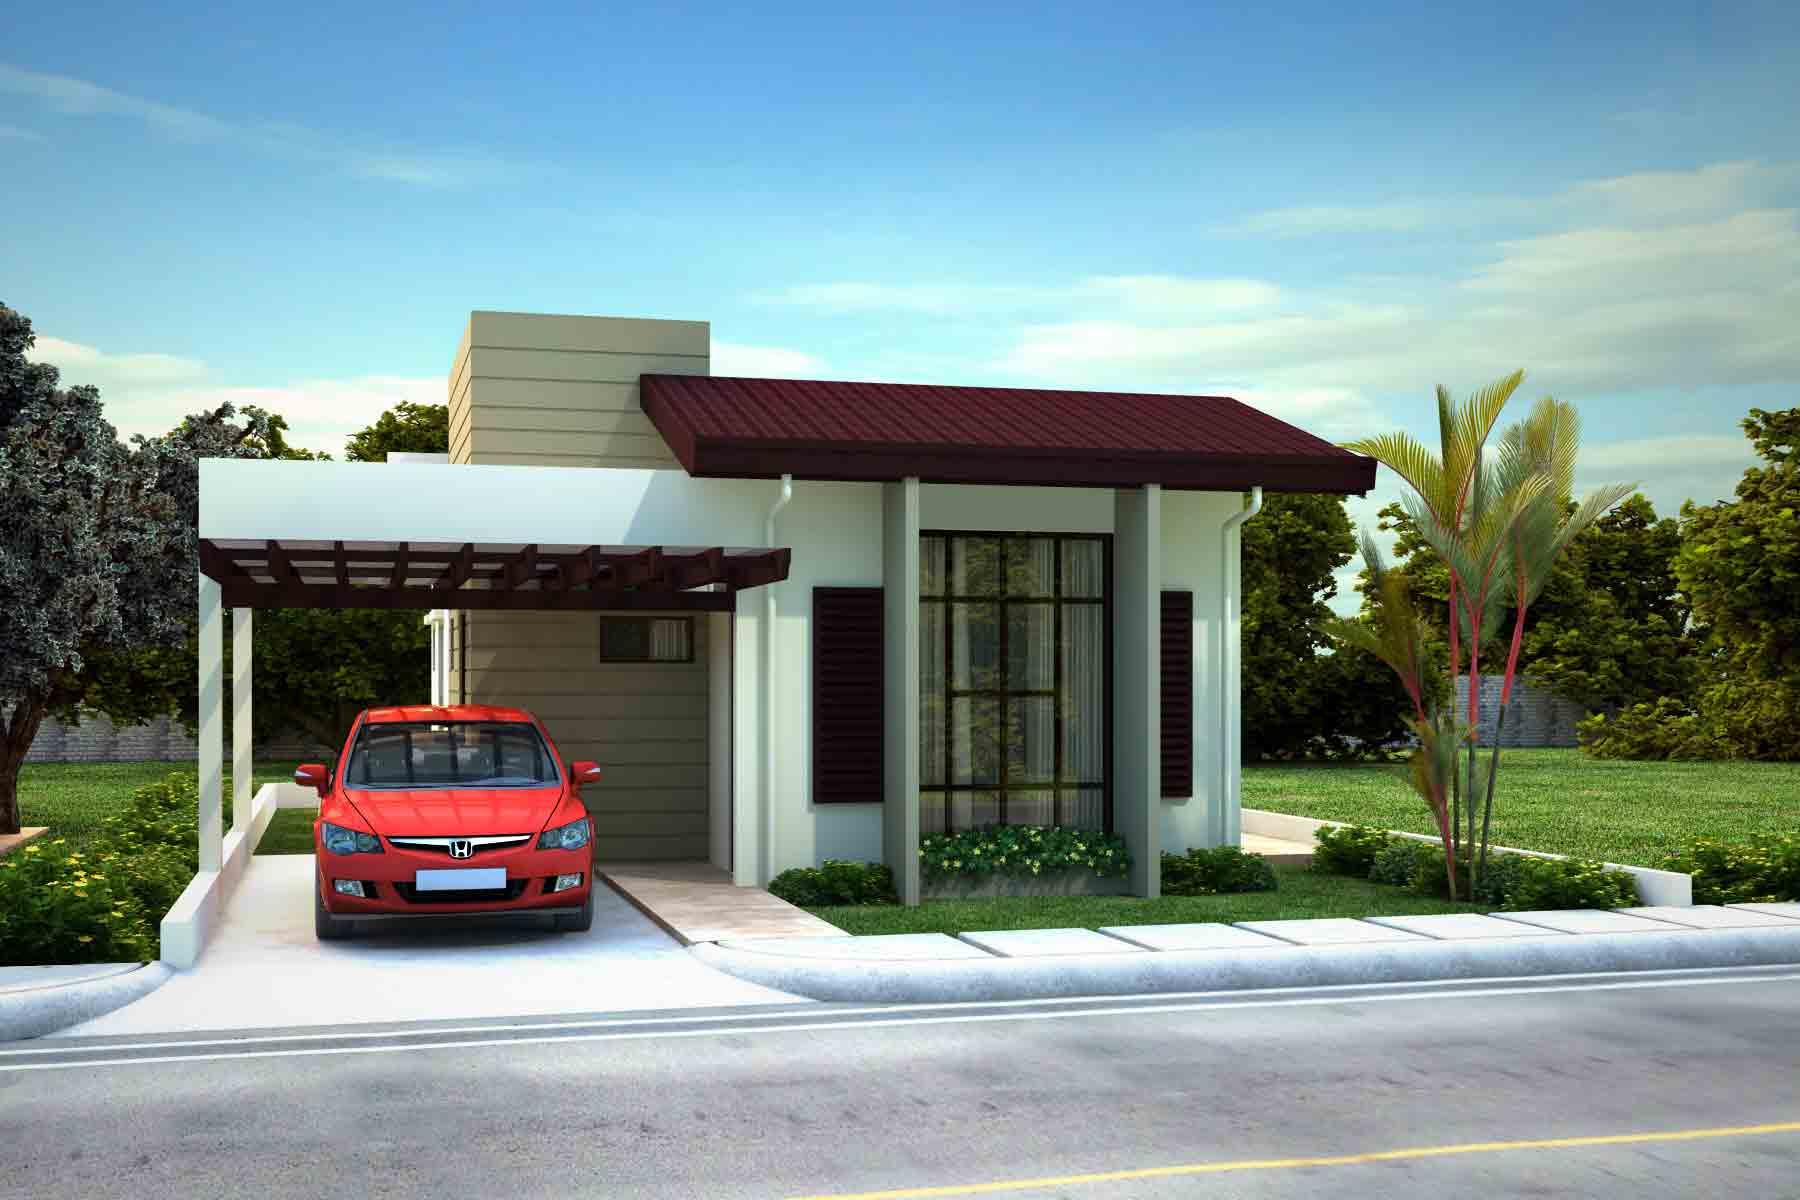 St james homes model houses naga city real estate for The model house